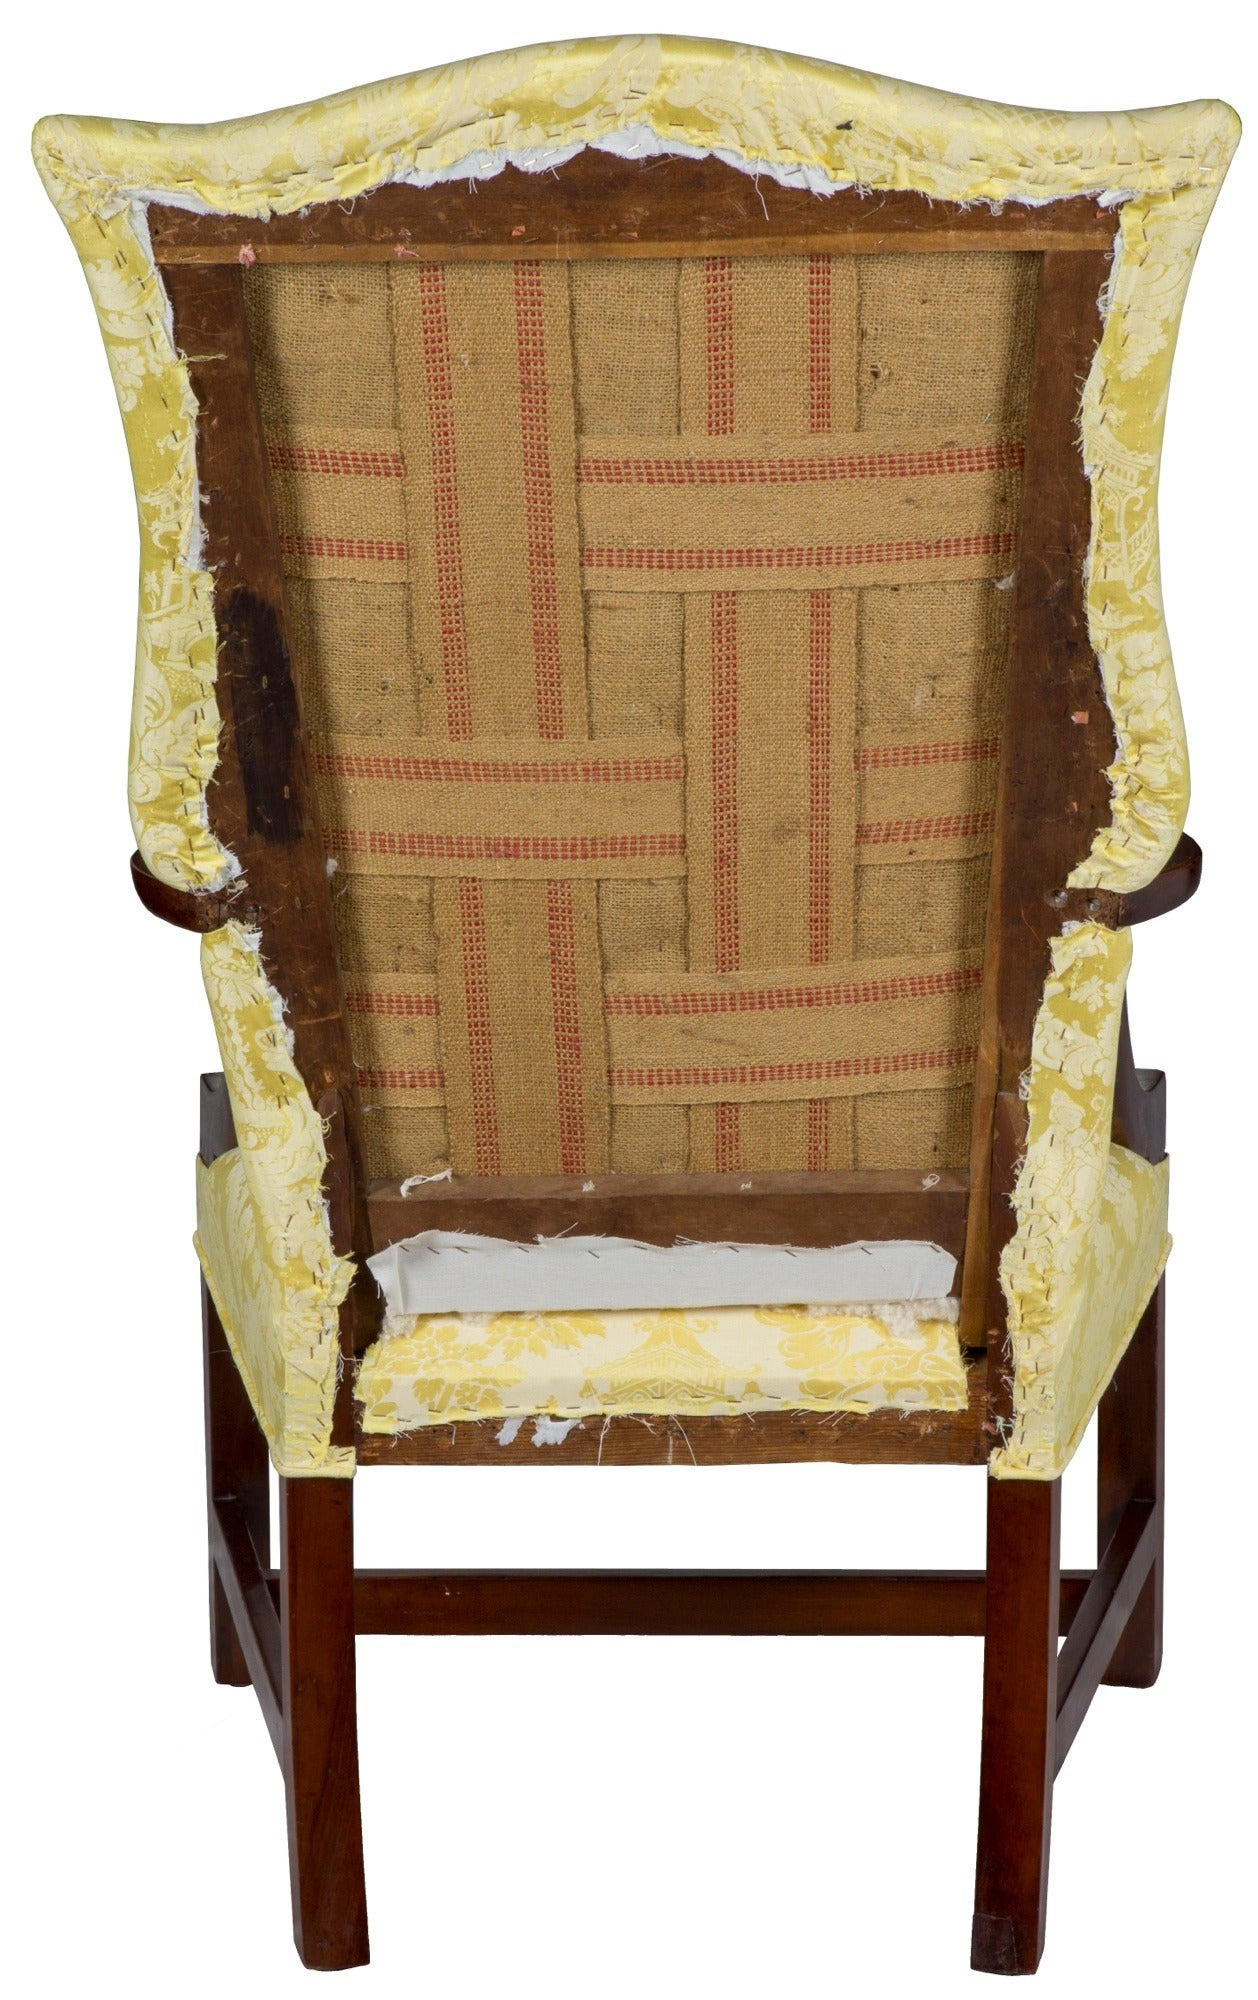 This israel sack american federal mahogany antique lolling arm chair - Chippendale Lolling Chair With String Inlay Probably New Hampshire Circa 1780 3